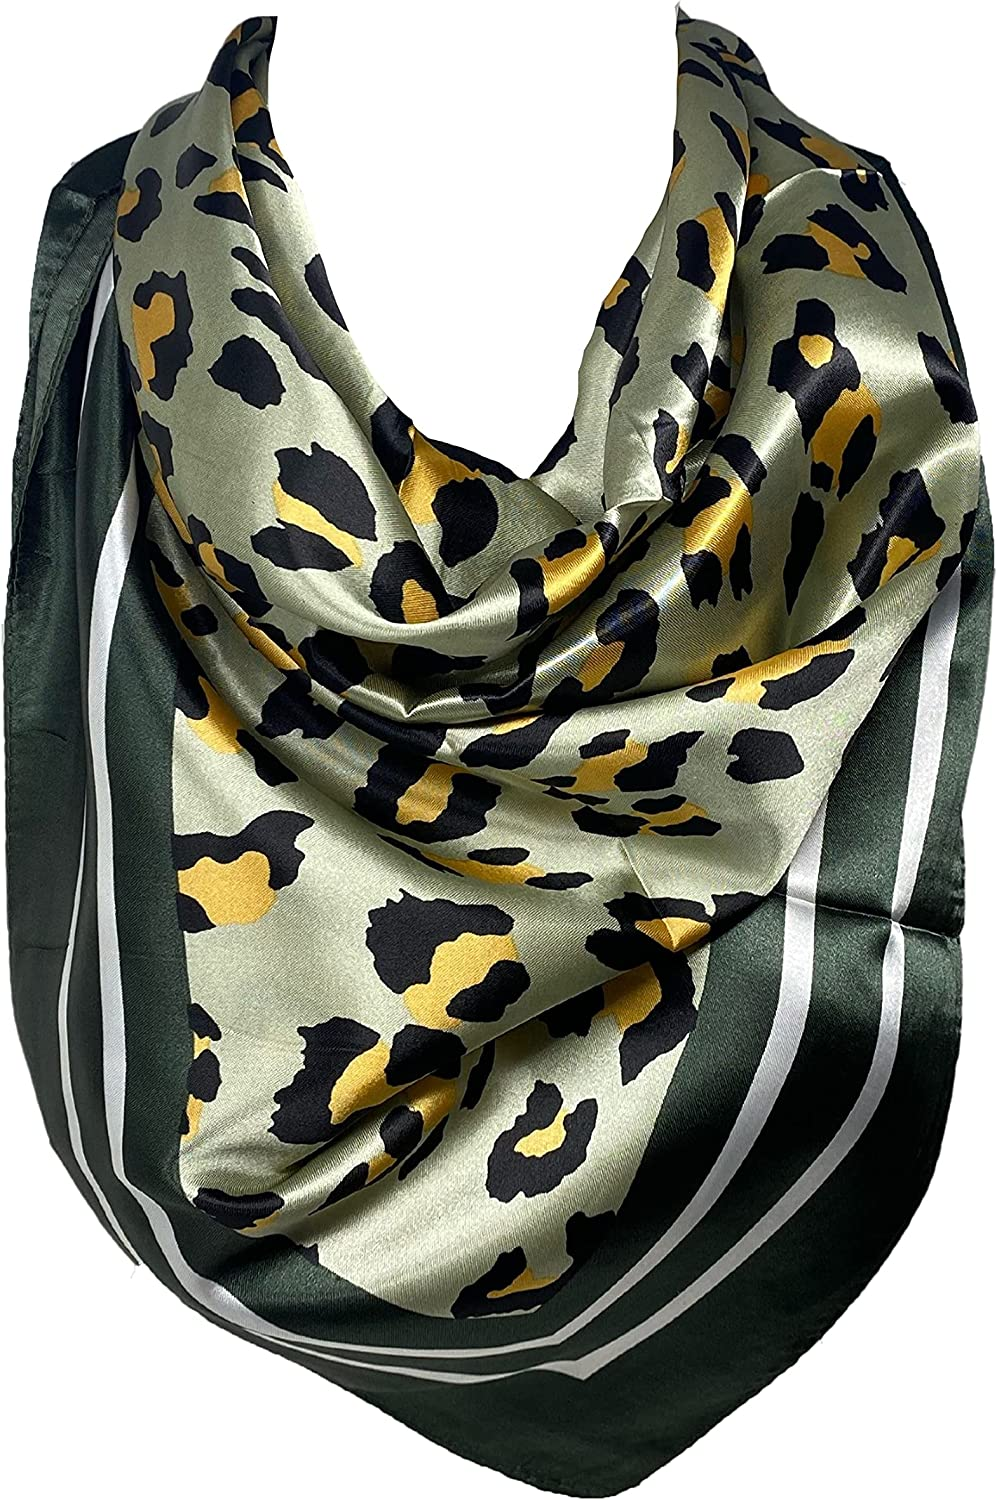 Self Embossed Silk Feel Bandana Square Neck Scarf, Head Scarves, Leopard Print with Tiger Print Border